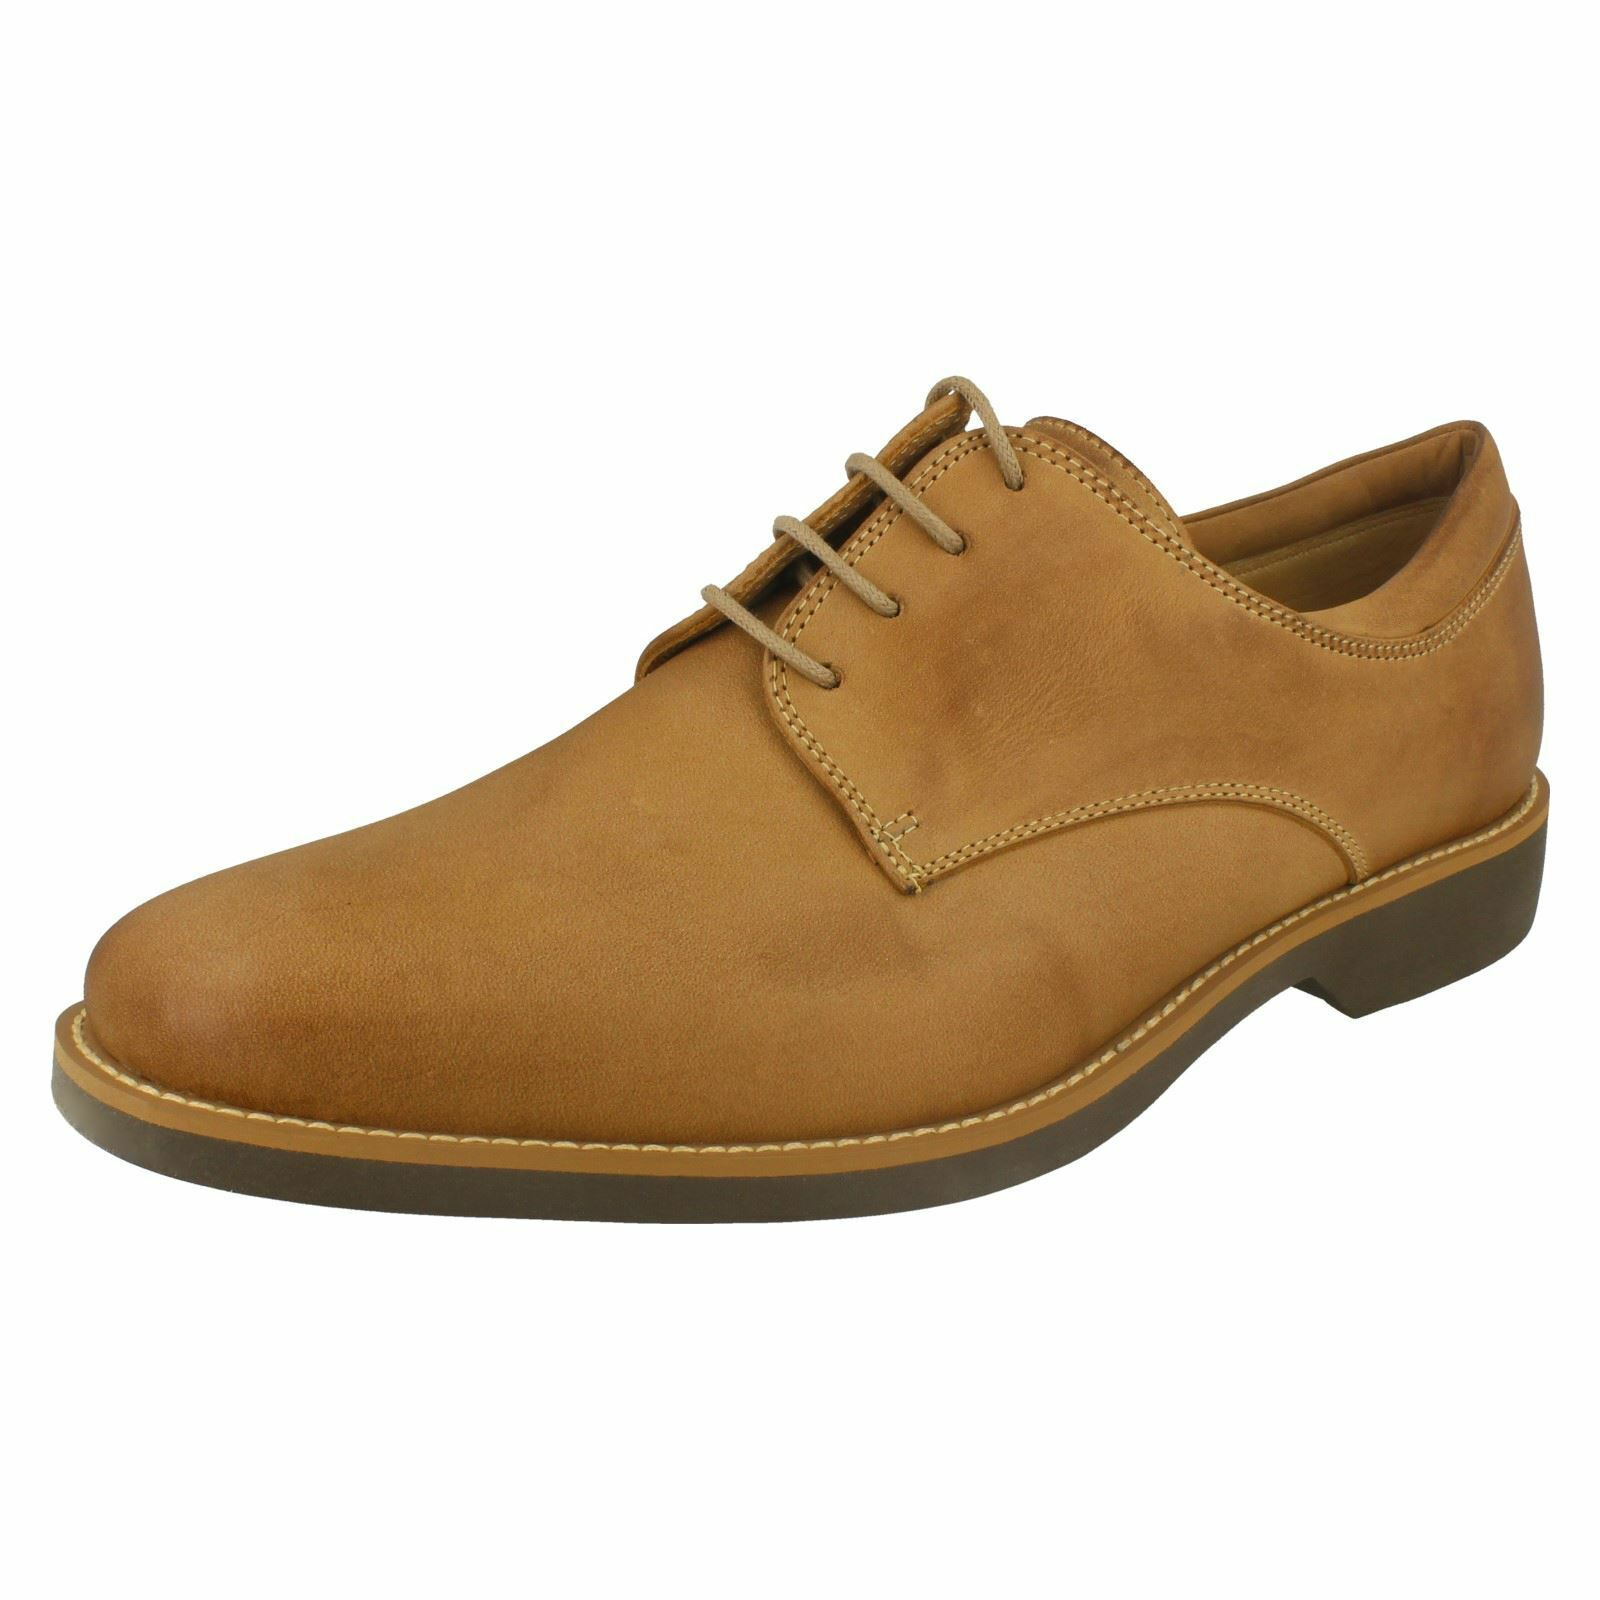 Mens Delta Leather Lace Up Shoes By Anatomic & & & Co 63bb92